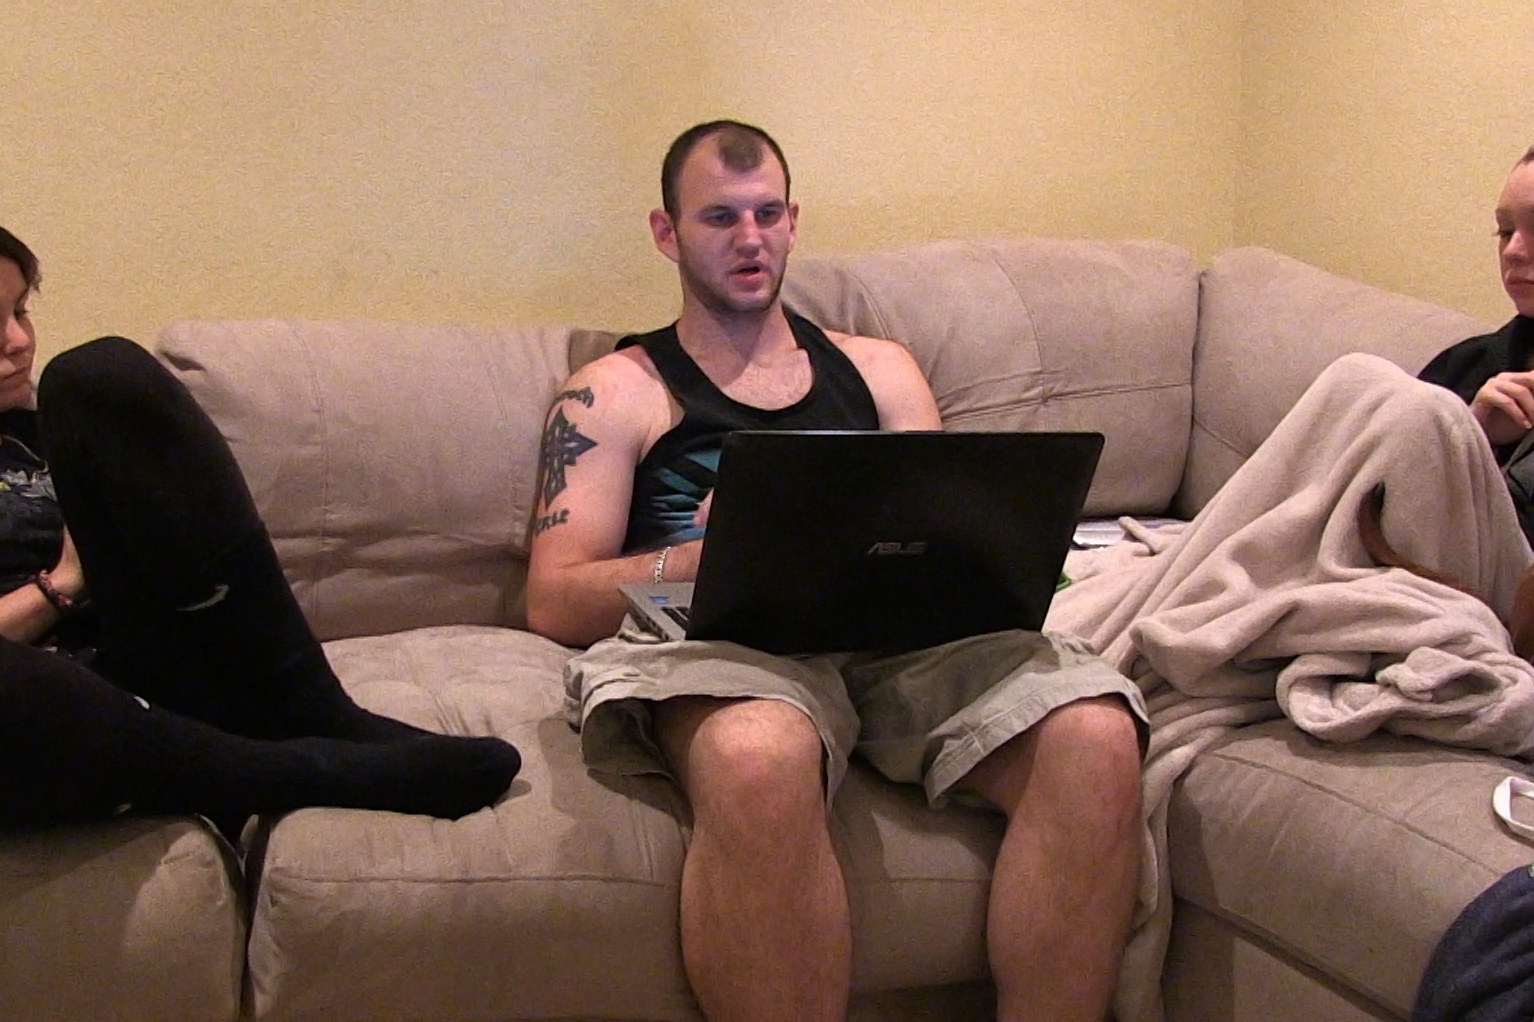 amateur-pornography-lawsuits-xtube-deep-throat-swollowing-blow-jobs-caught-on-spy-cam